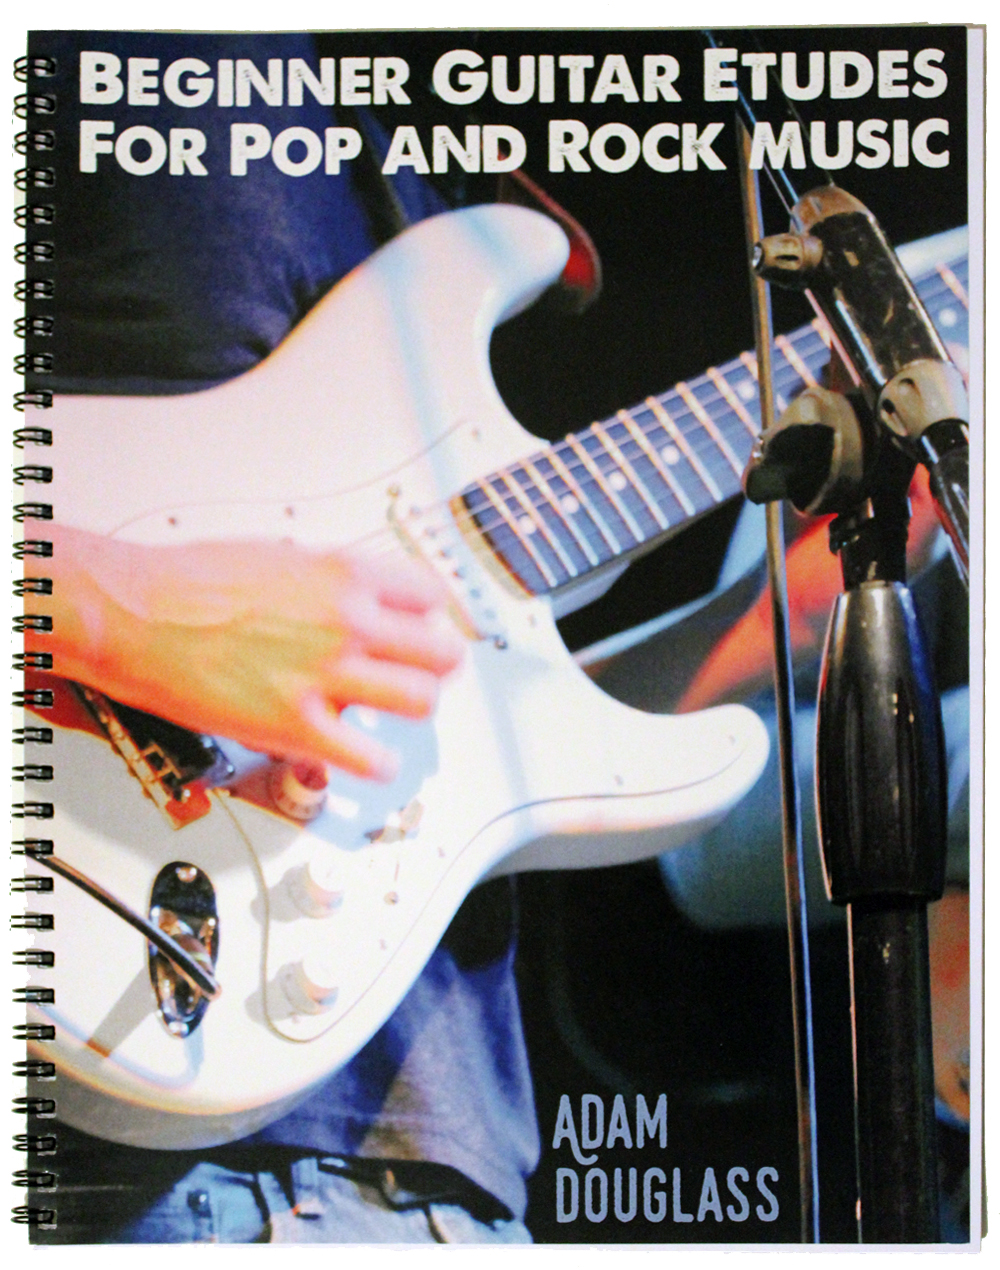 Beginner-Guitar-Etudes-for-Pop-and-Rock-Music-by-Adam-Douglass-4.jpg